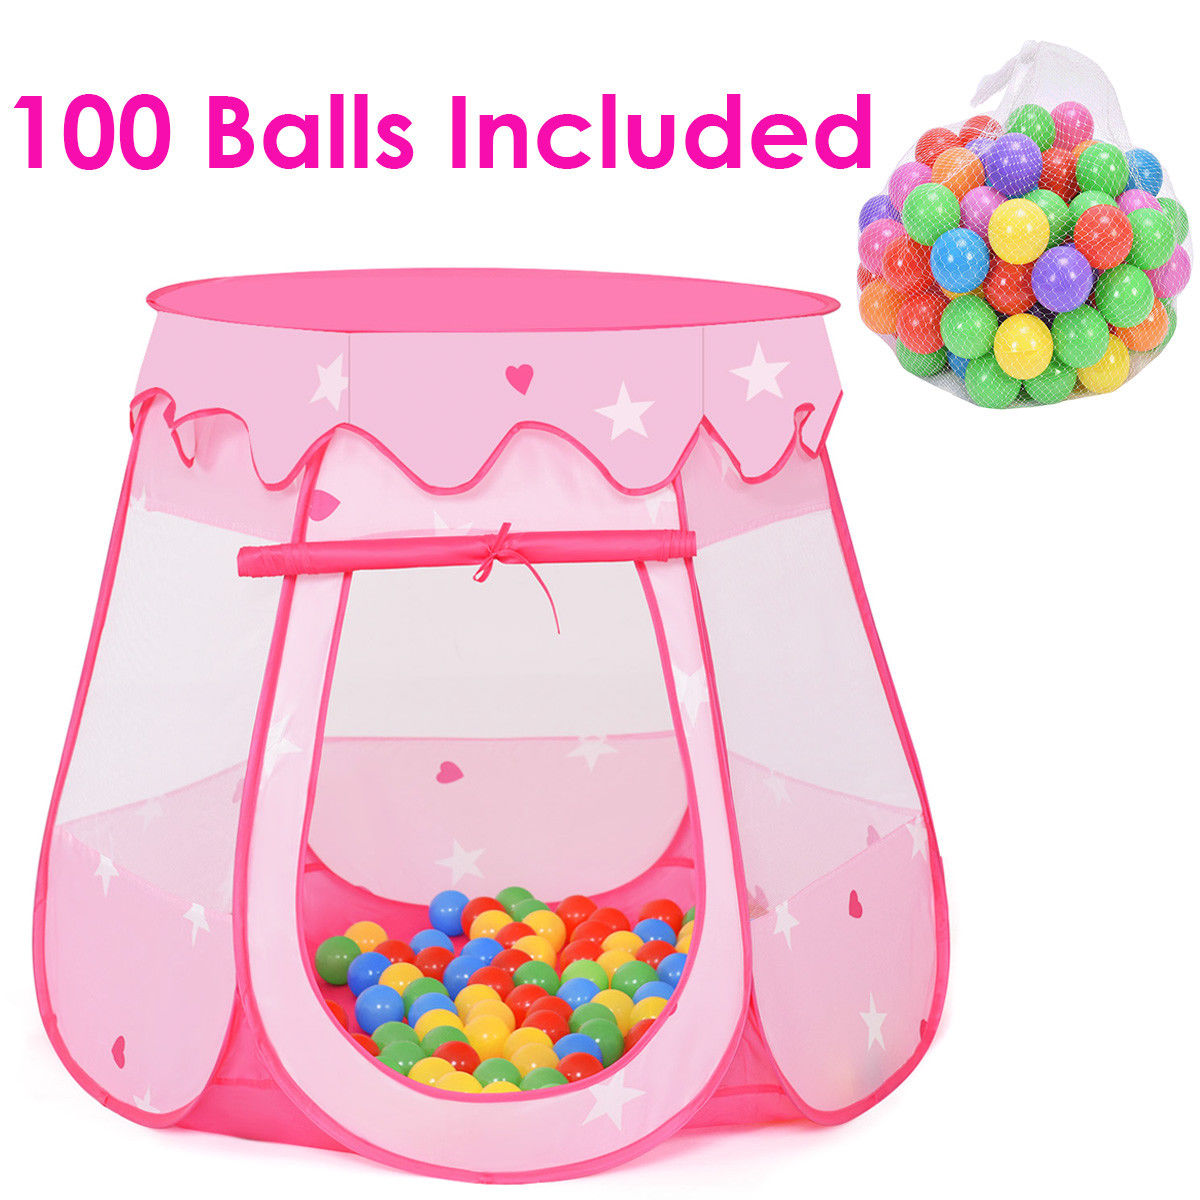 Costway Kid Outdoor Indoor Princess Play Tent Playhouse Ball Tent Toddler Toys w/ 100 Balls